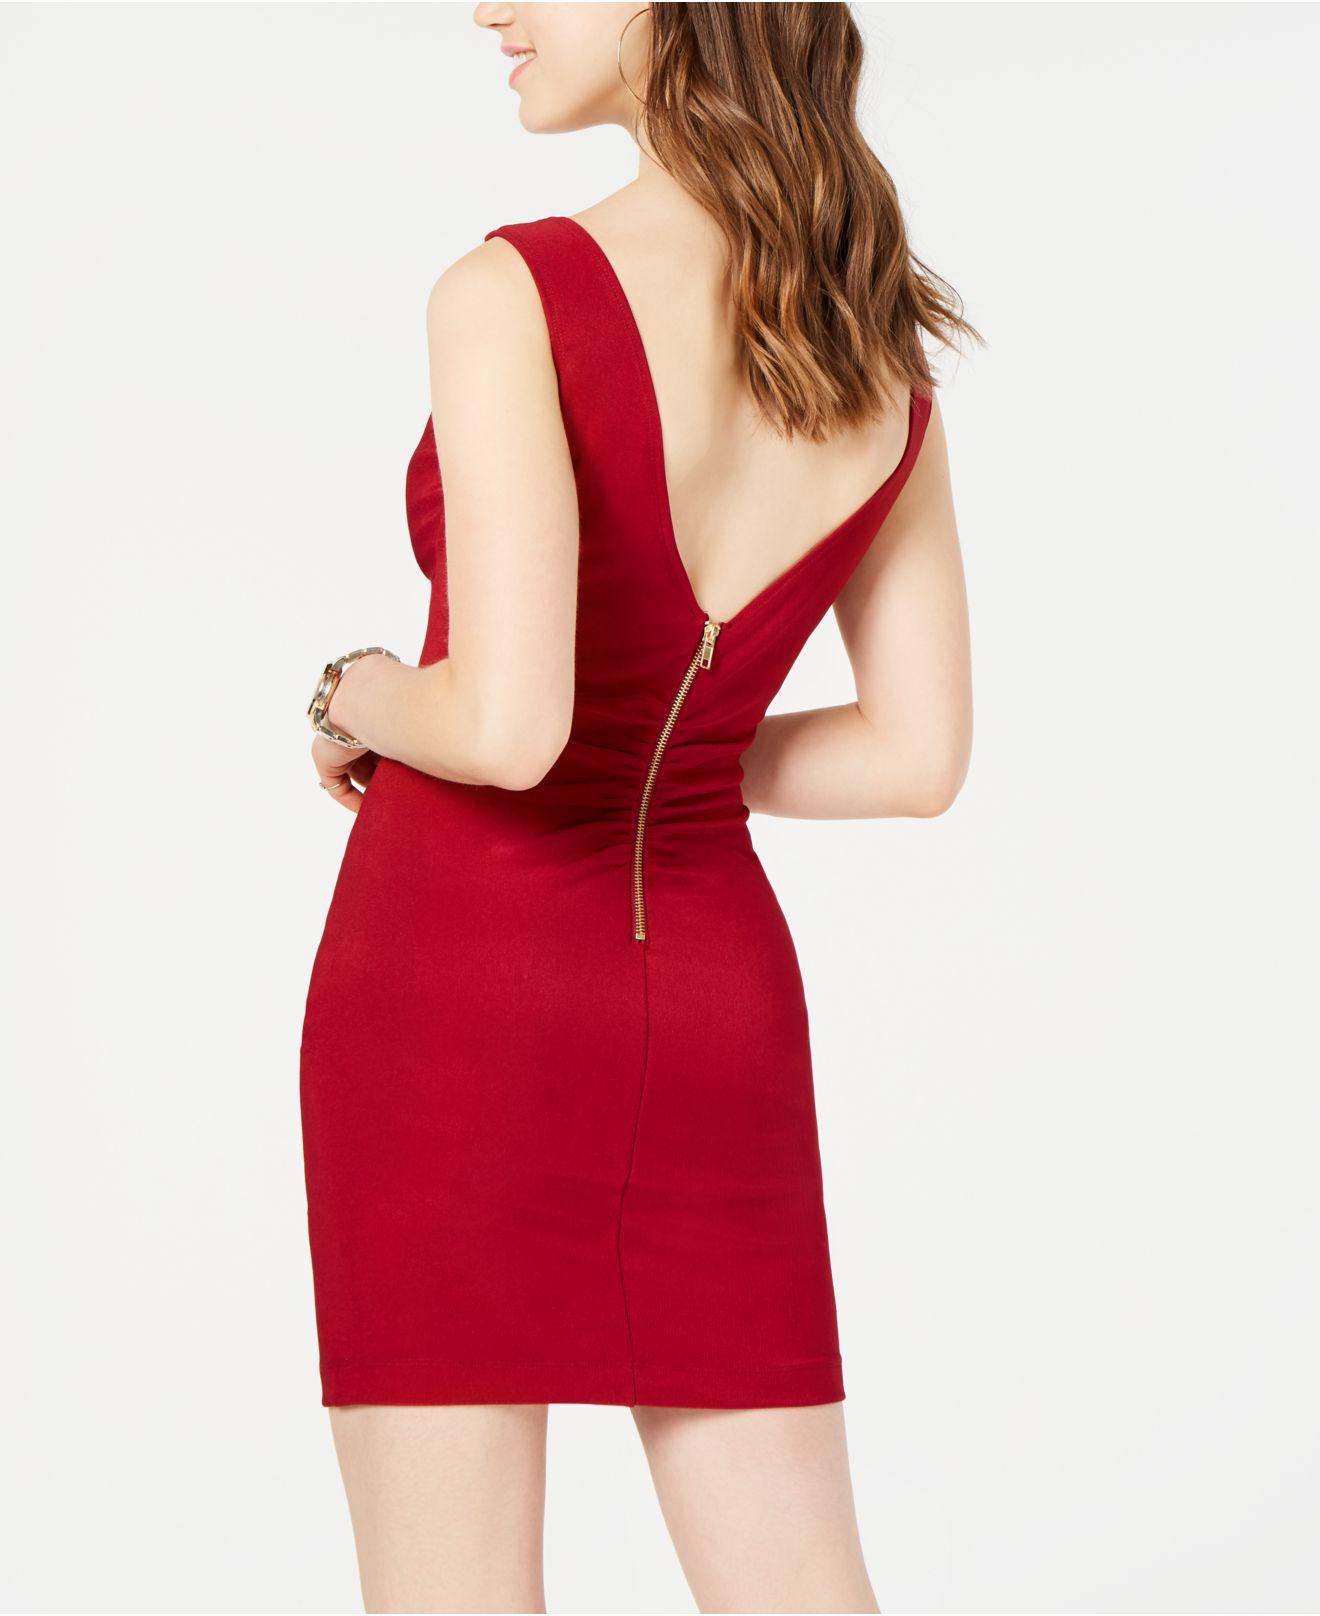 89d08540ed7 Emerald Sundae Juniors  Embellished Bodycon Dress in Red - Lyst